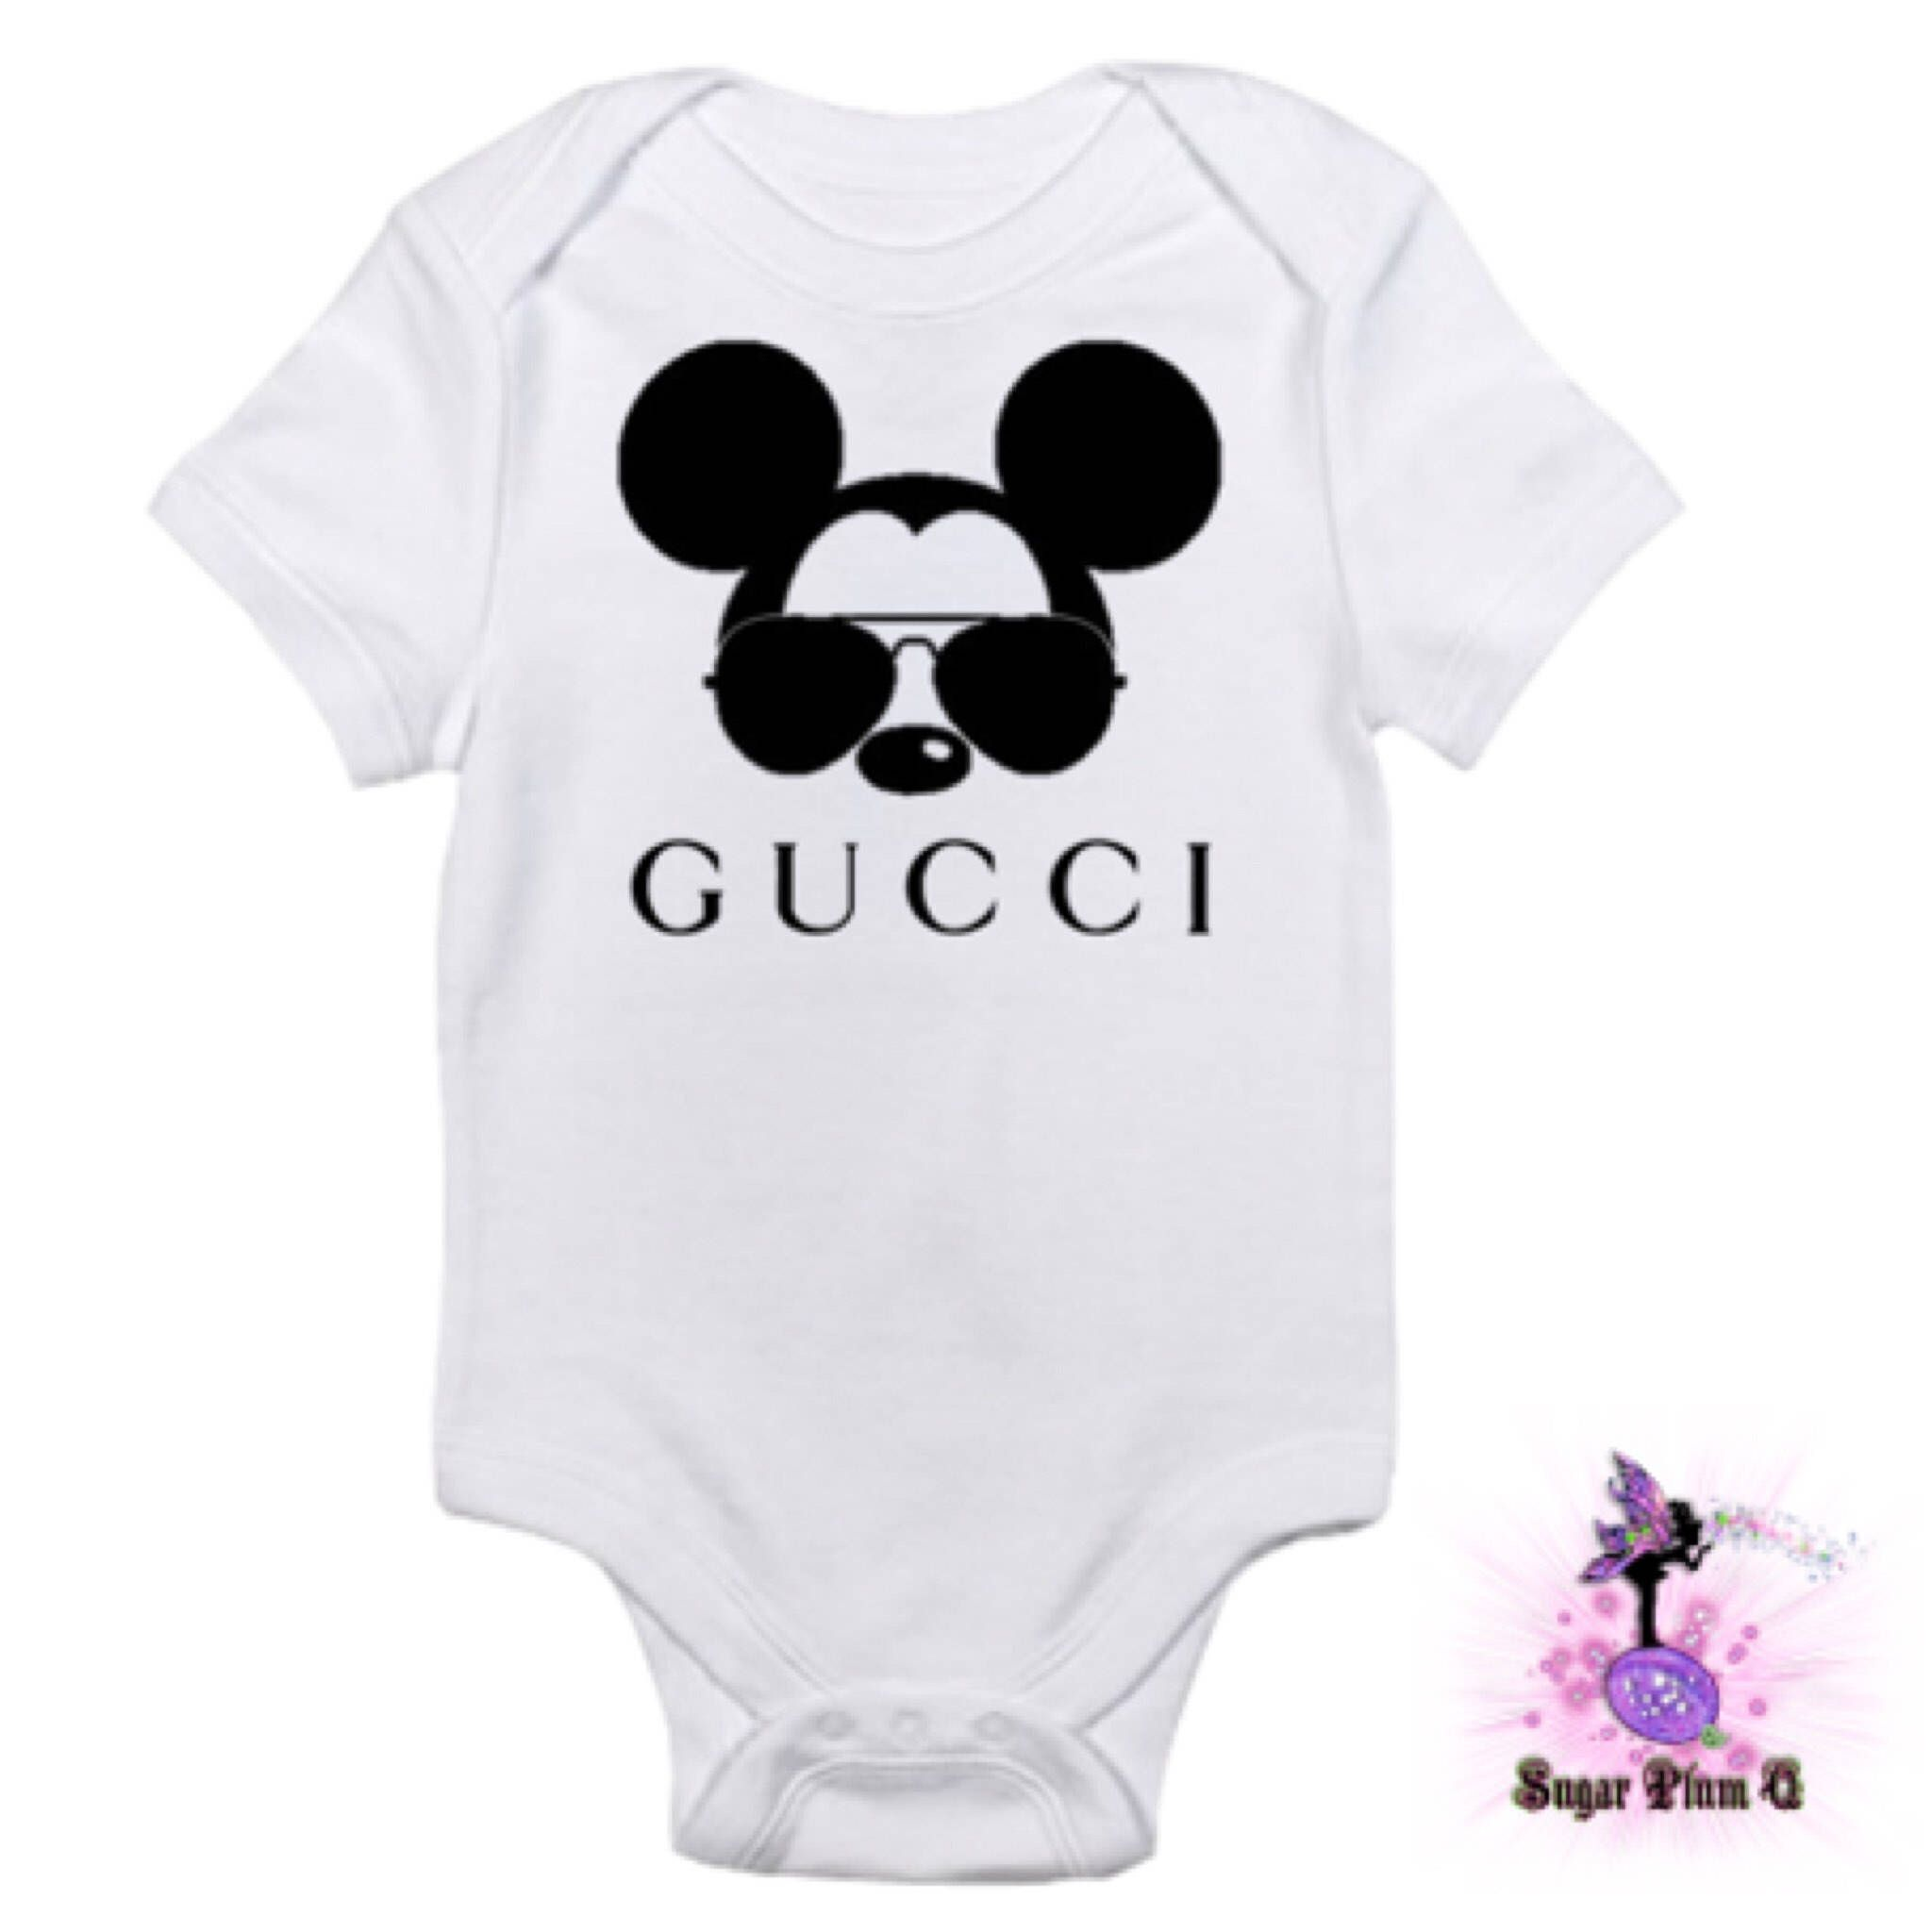 816876bbc Designer Inspired Gucci Mickey Mouse with Aviator Sunglasses Baby Onesie  Babyshower Gift | First Birthday